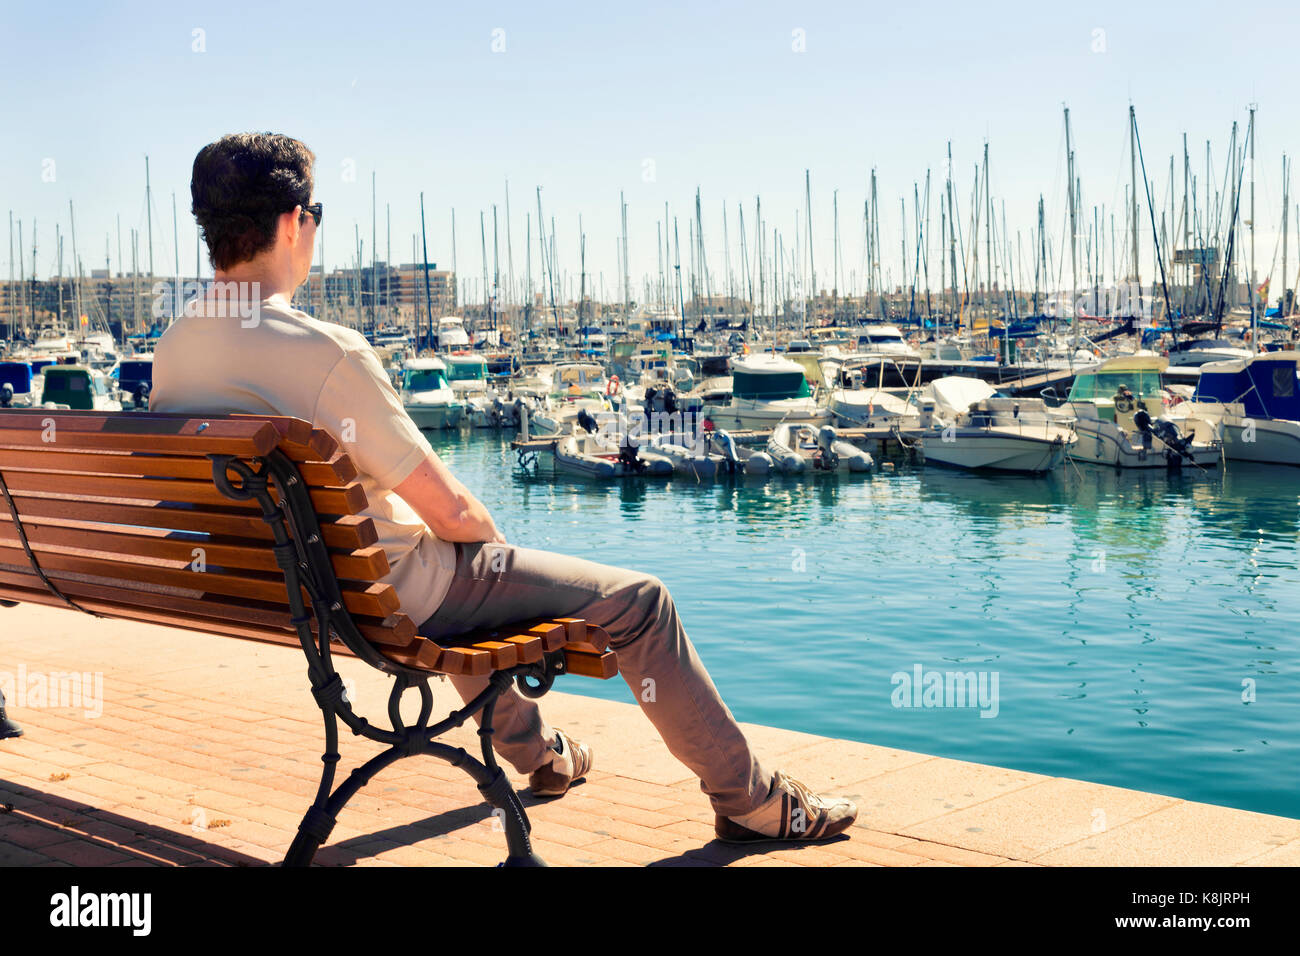 man sitting and  sunbathing on a bench contemplating the boats in the alicante port. Spain - Stock Image